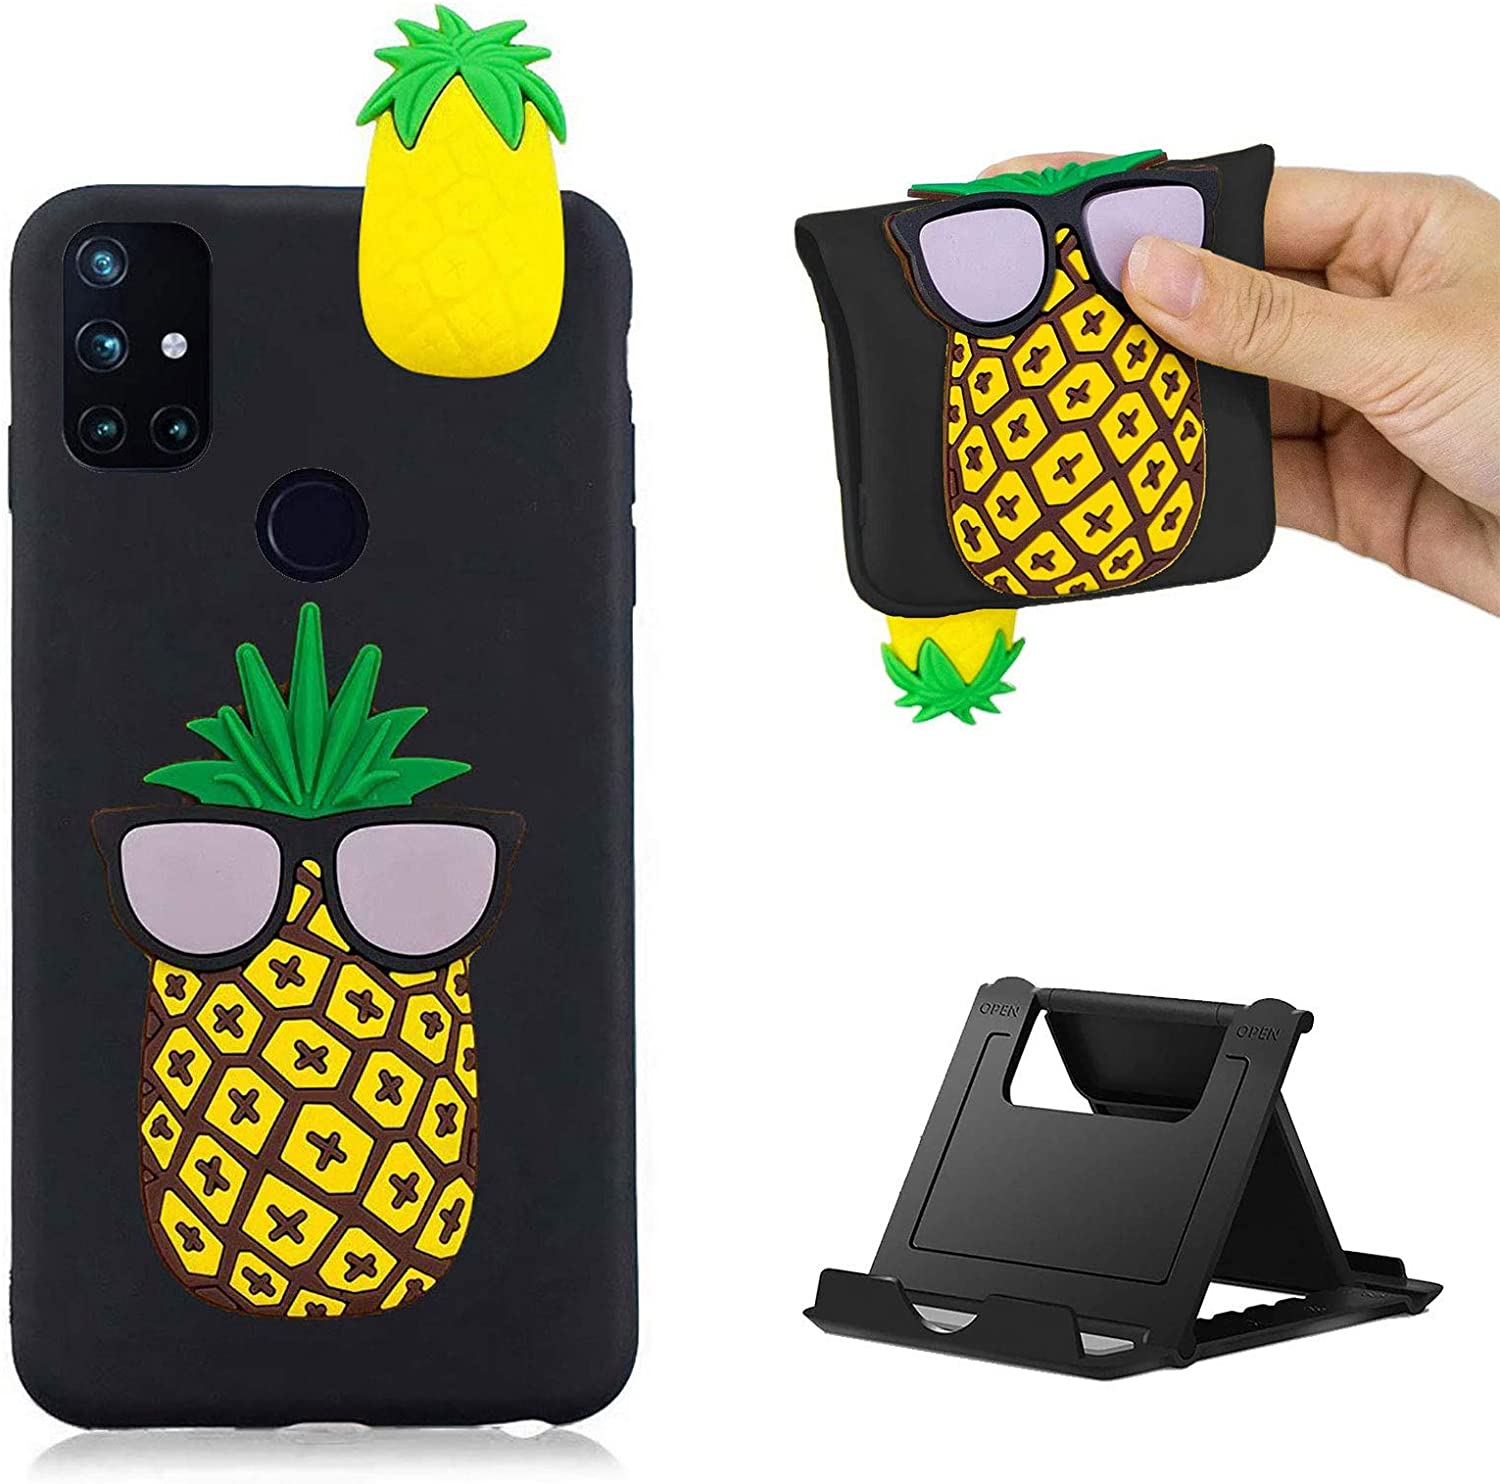 Shinyzone Compatible with Samsung Galaxy Silicone Max 41% OFF Ca 3D Max 85% OFF Case A21